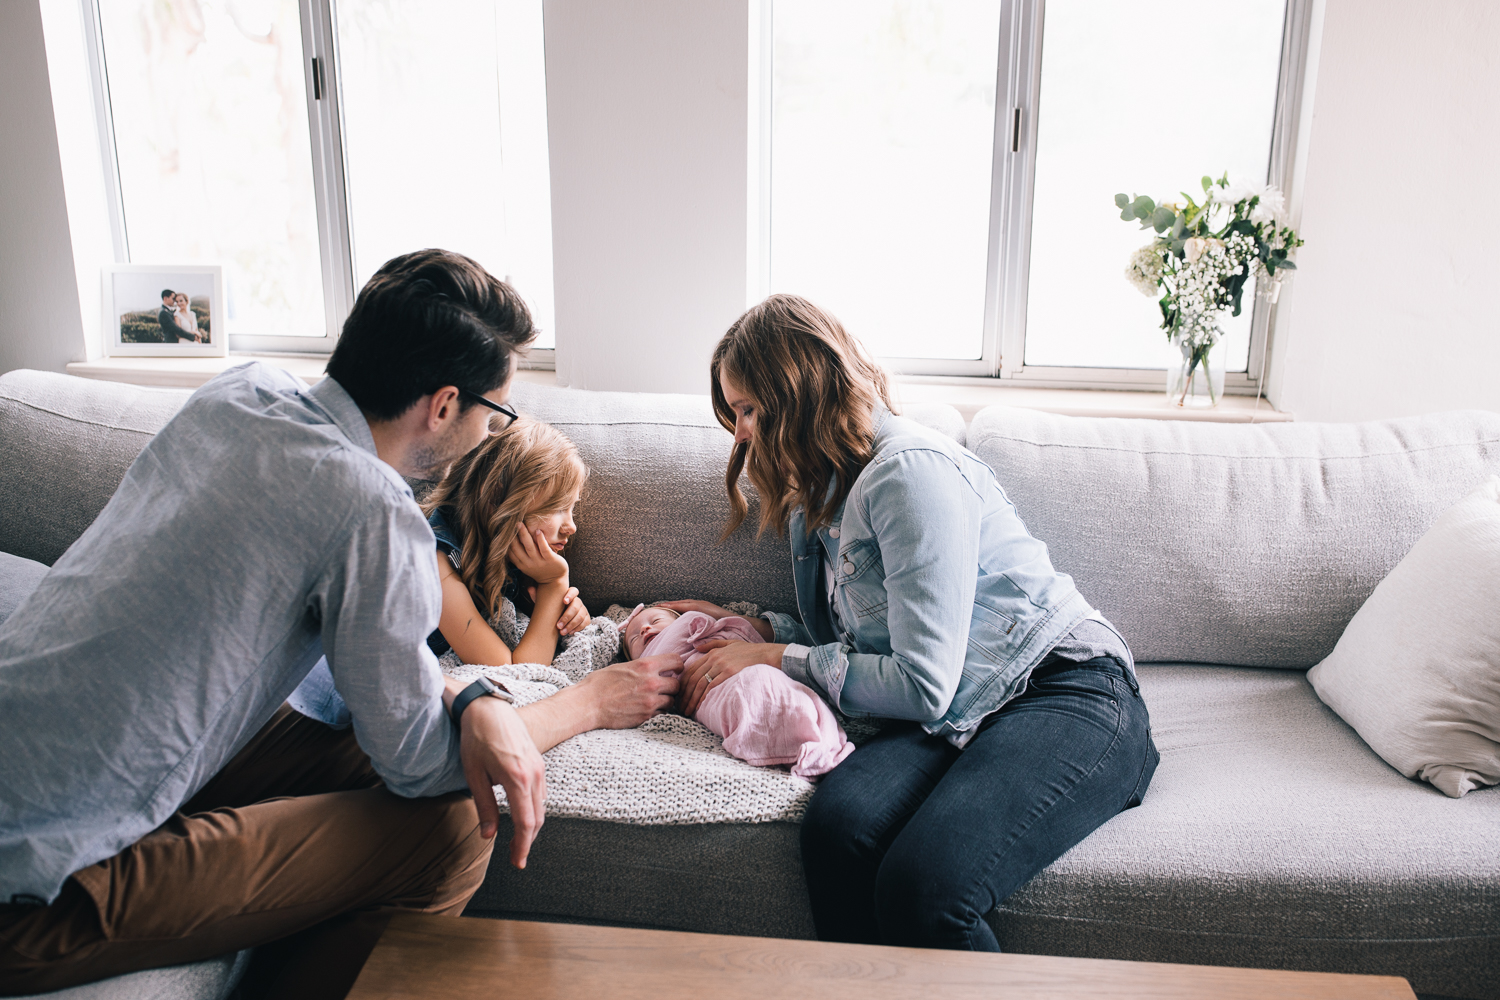 2019_05_ 262019.05.26 Isla Garrison Newborn Session Blog Photos Edited For Web 0038.jpg